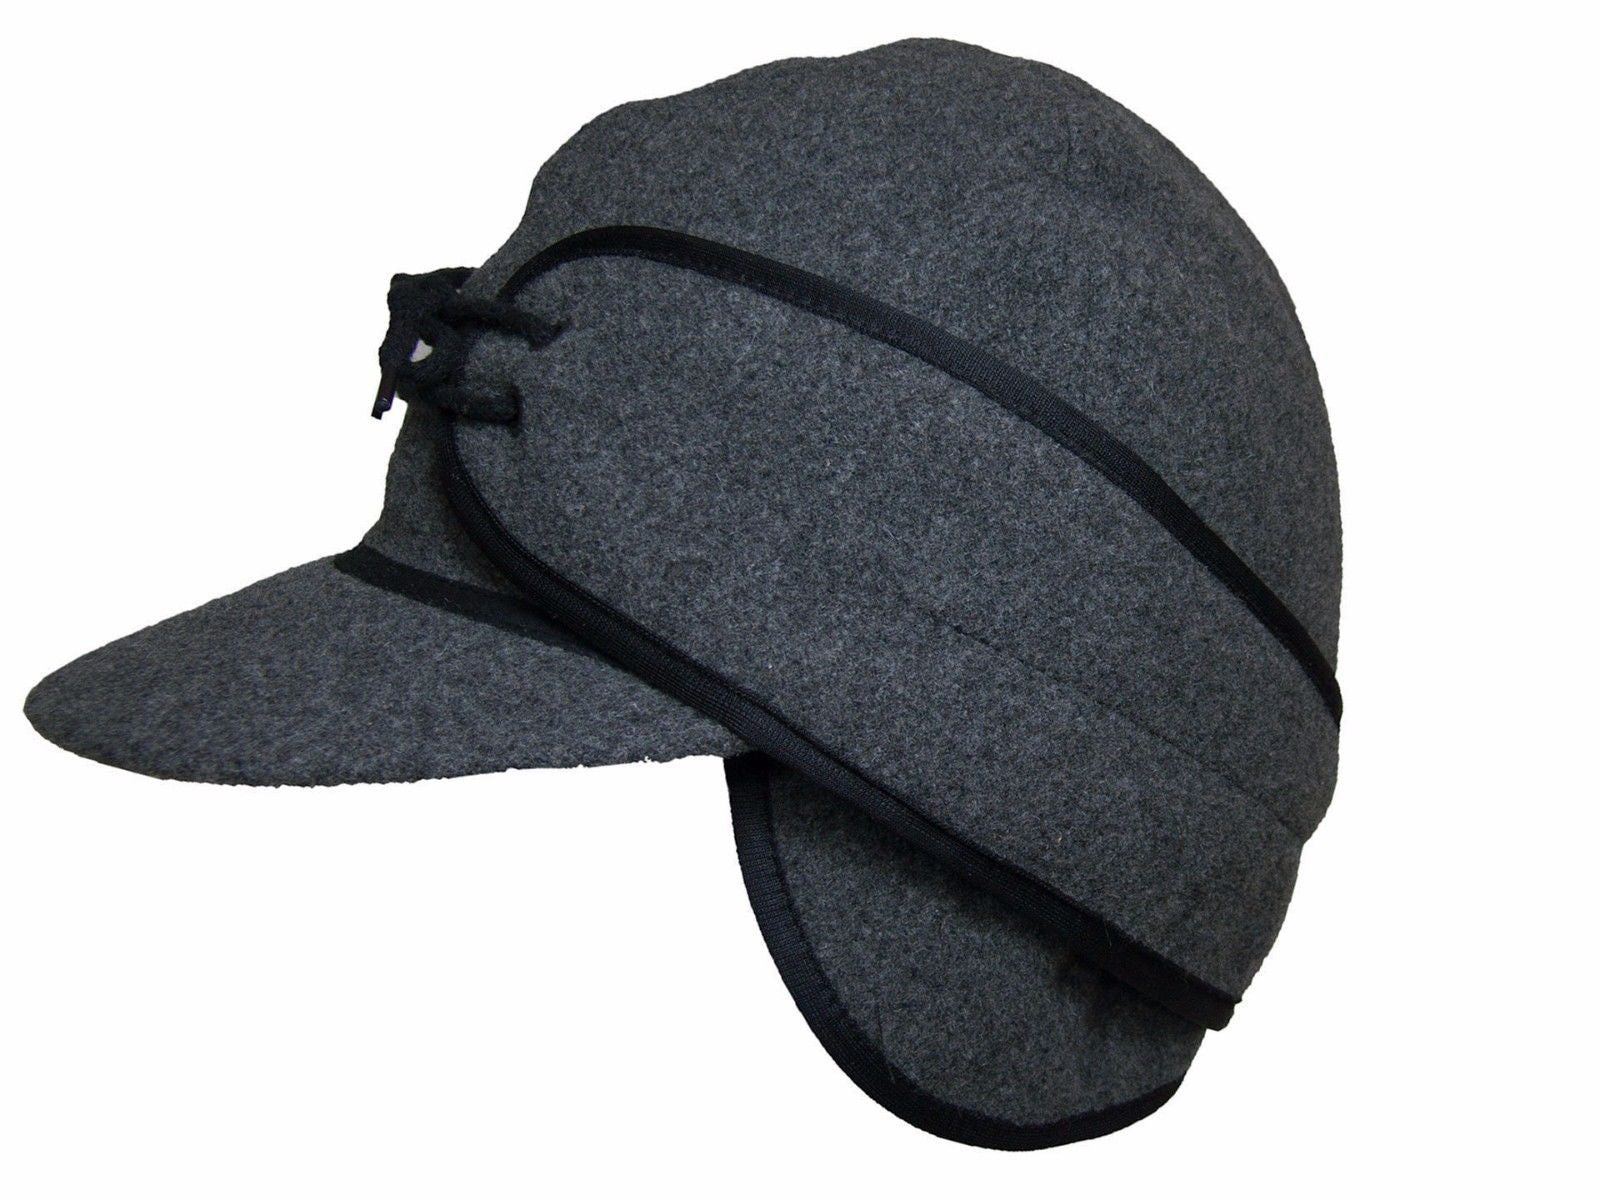 ... Winter Wool Cap Fold Down Ear Flaps Wyoming Traders side detail ... 6fb482dee2d